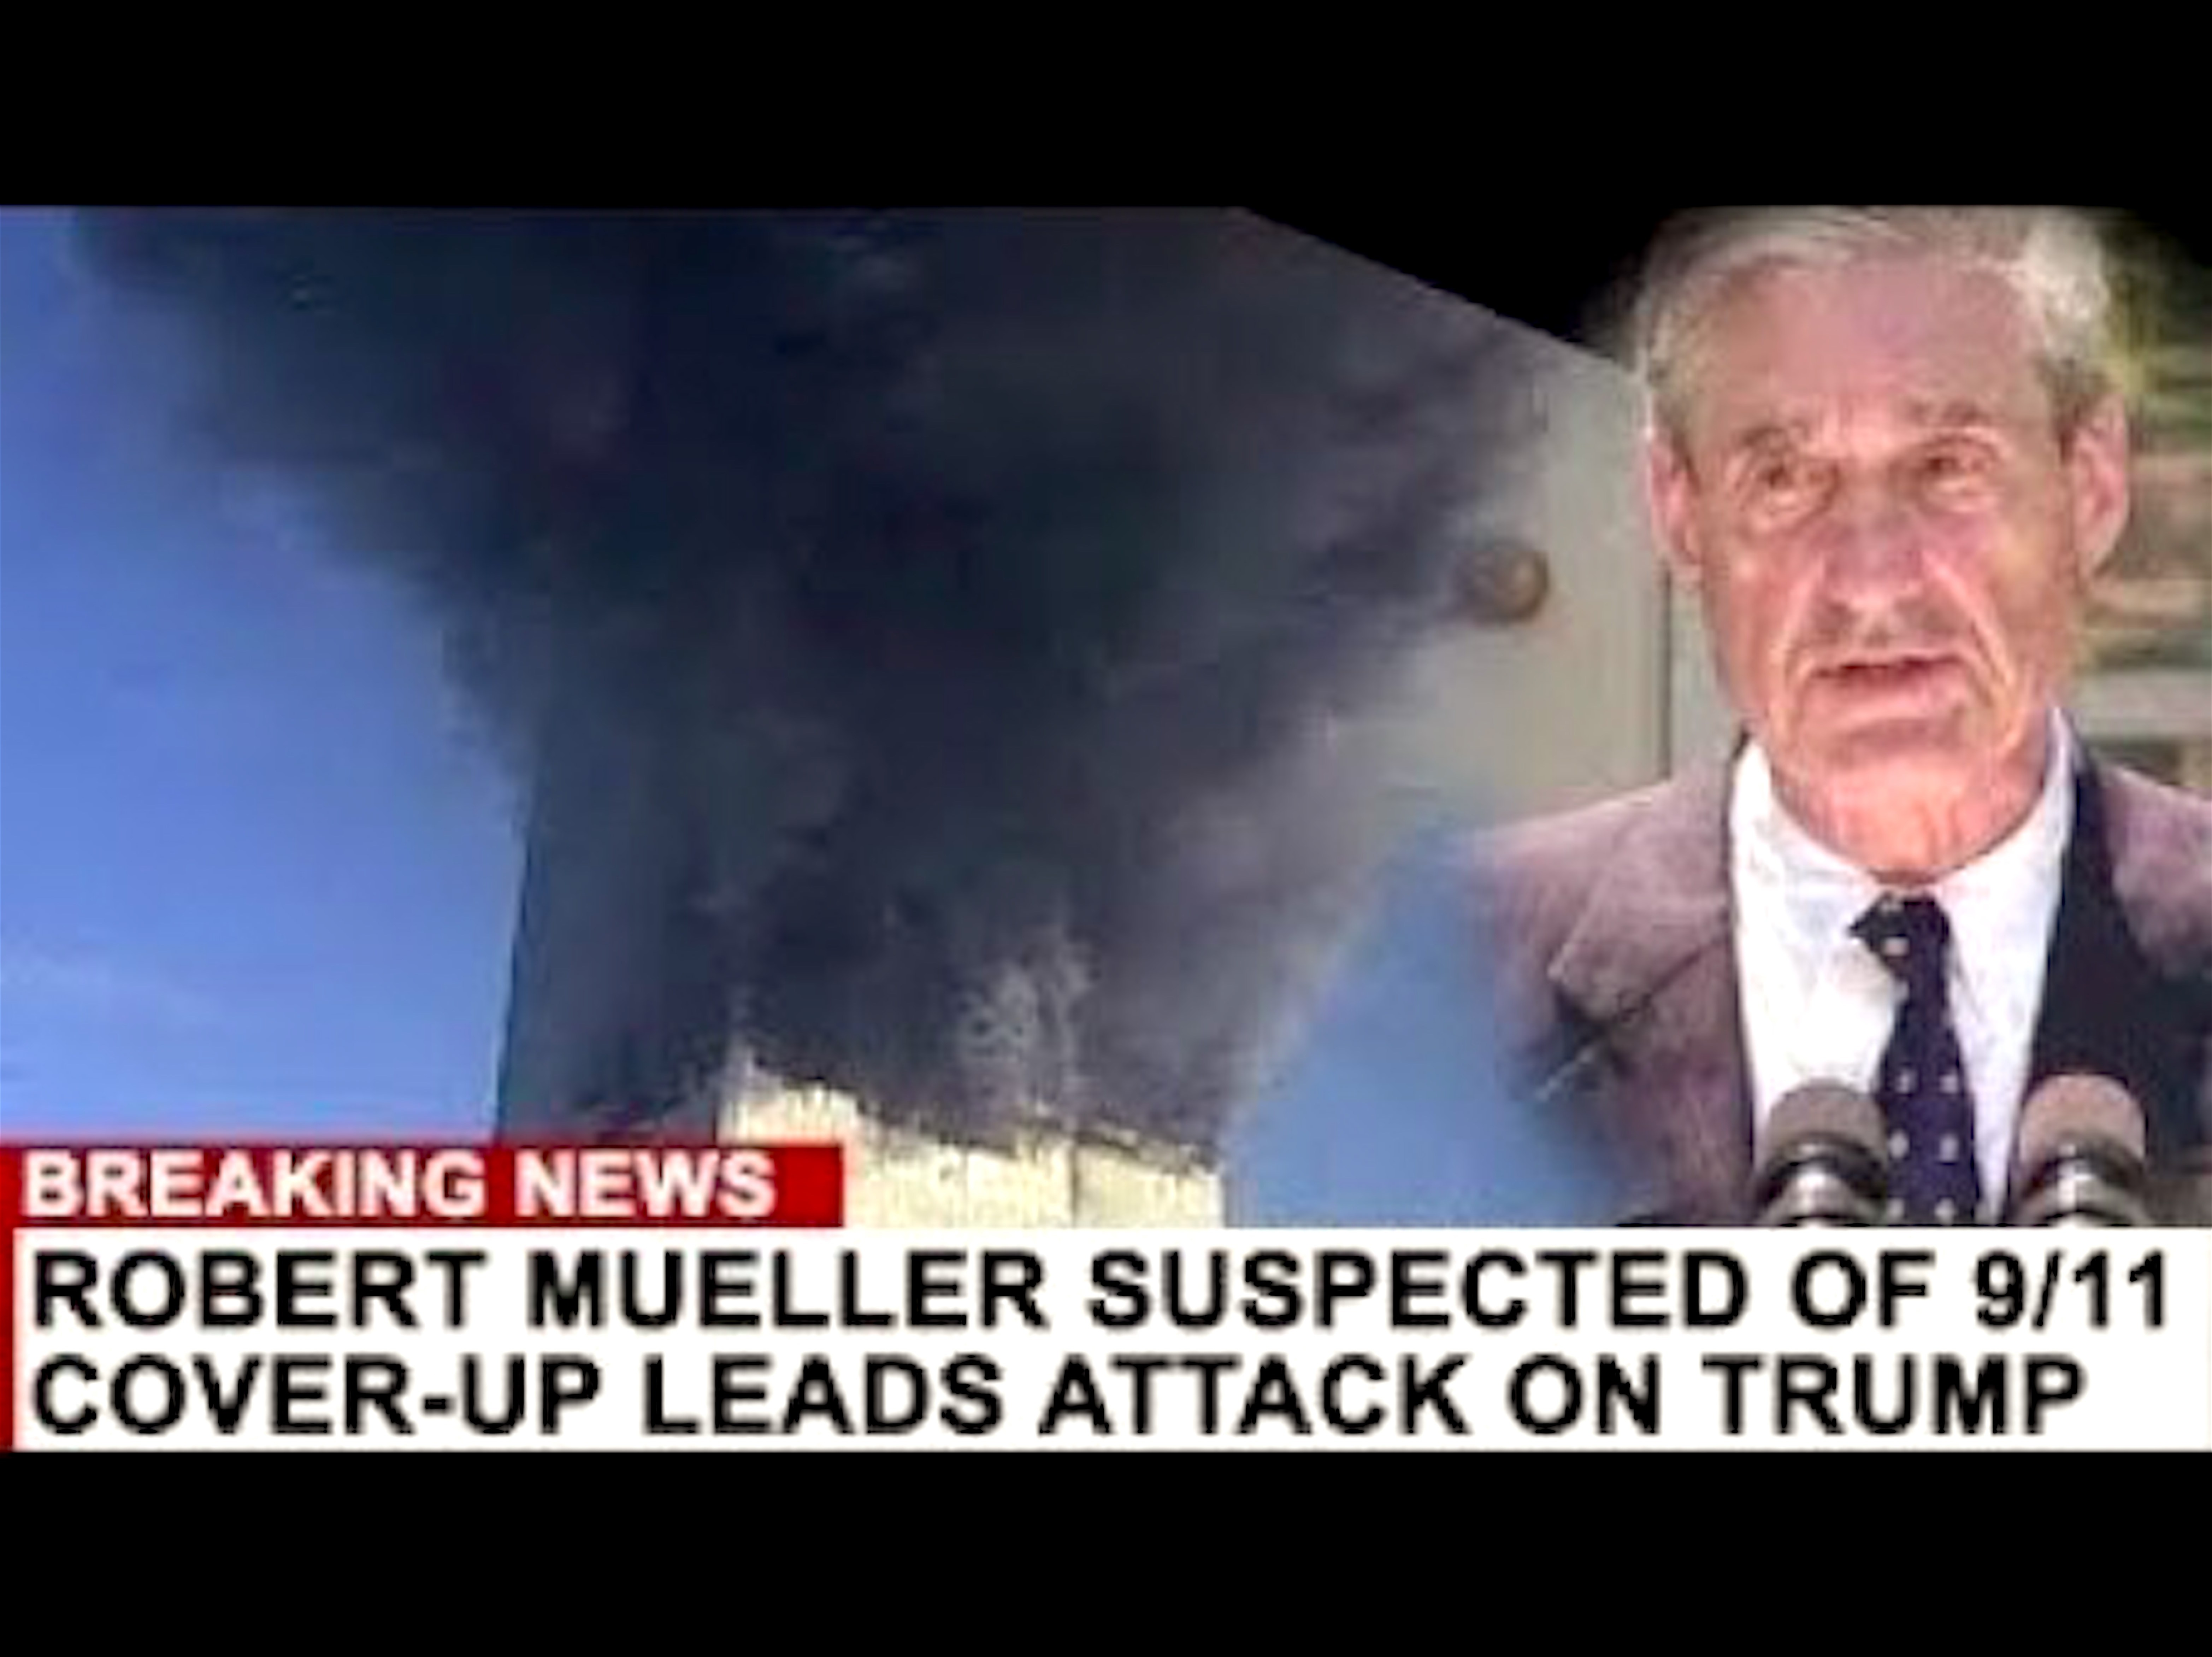 BREAKING NEWS Robert Mueller suspected of 9/11 cover-up leads attack on Trump (foto Before It's News)